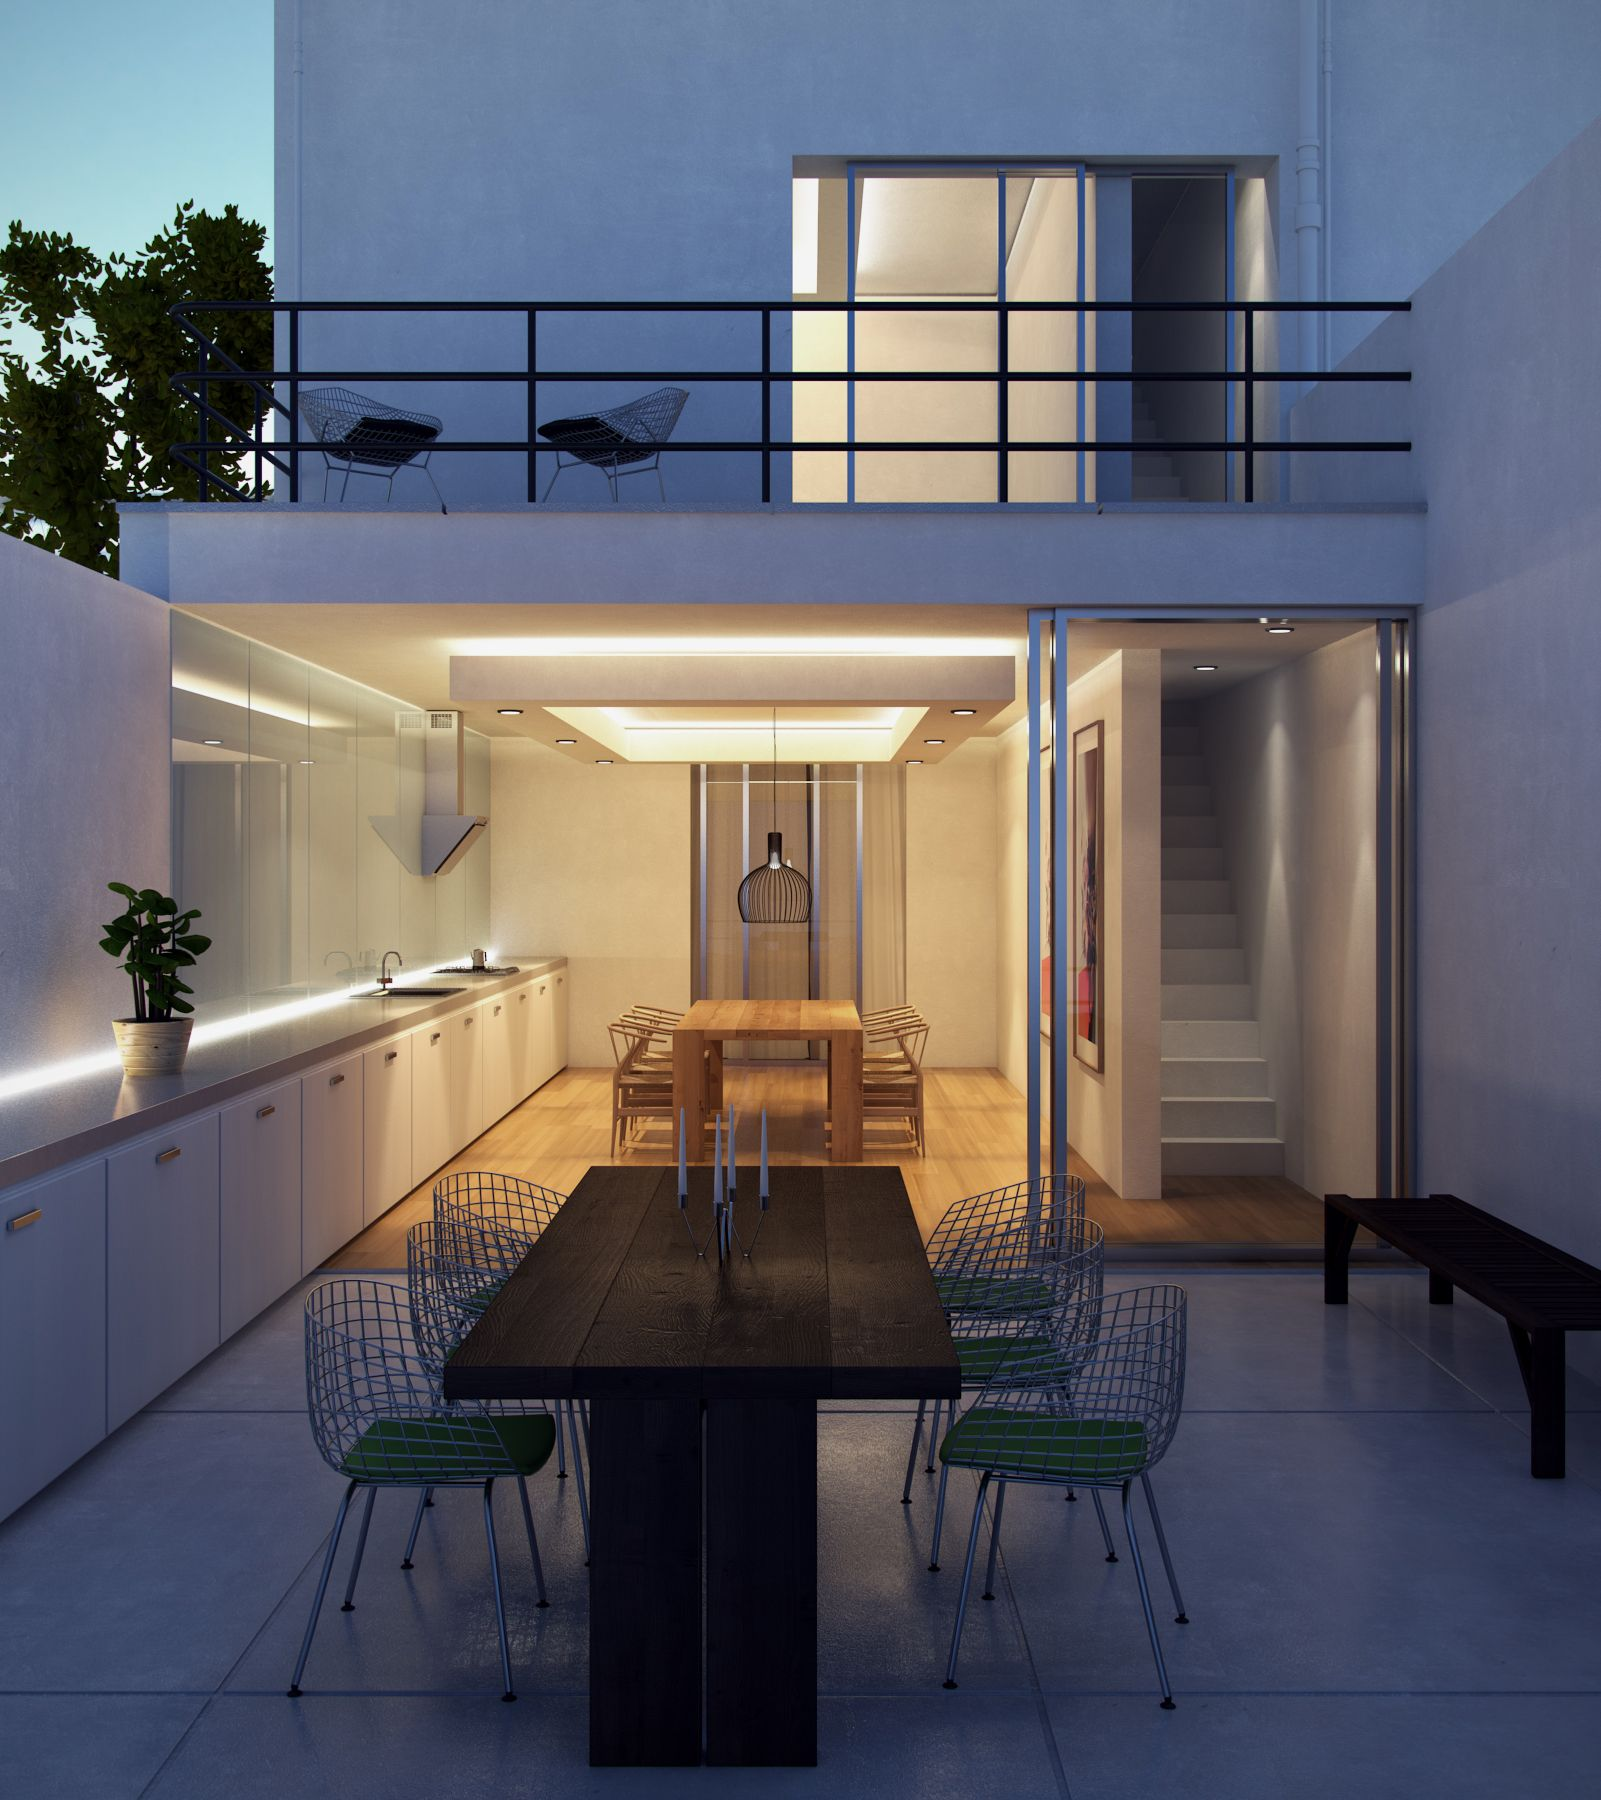 Realistic Night Exterior Using Vray HDRI and Vray Ies Lights